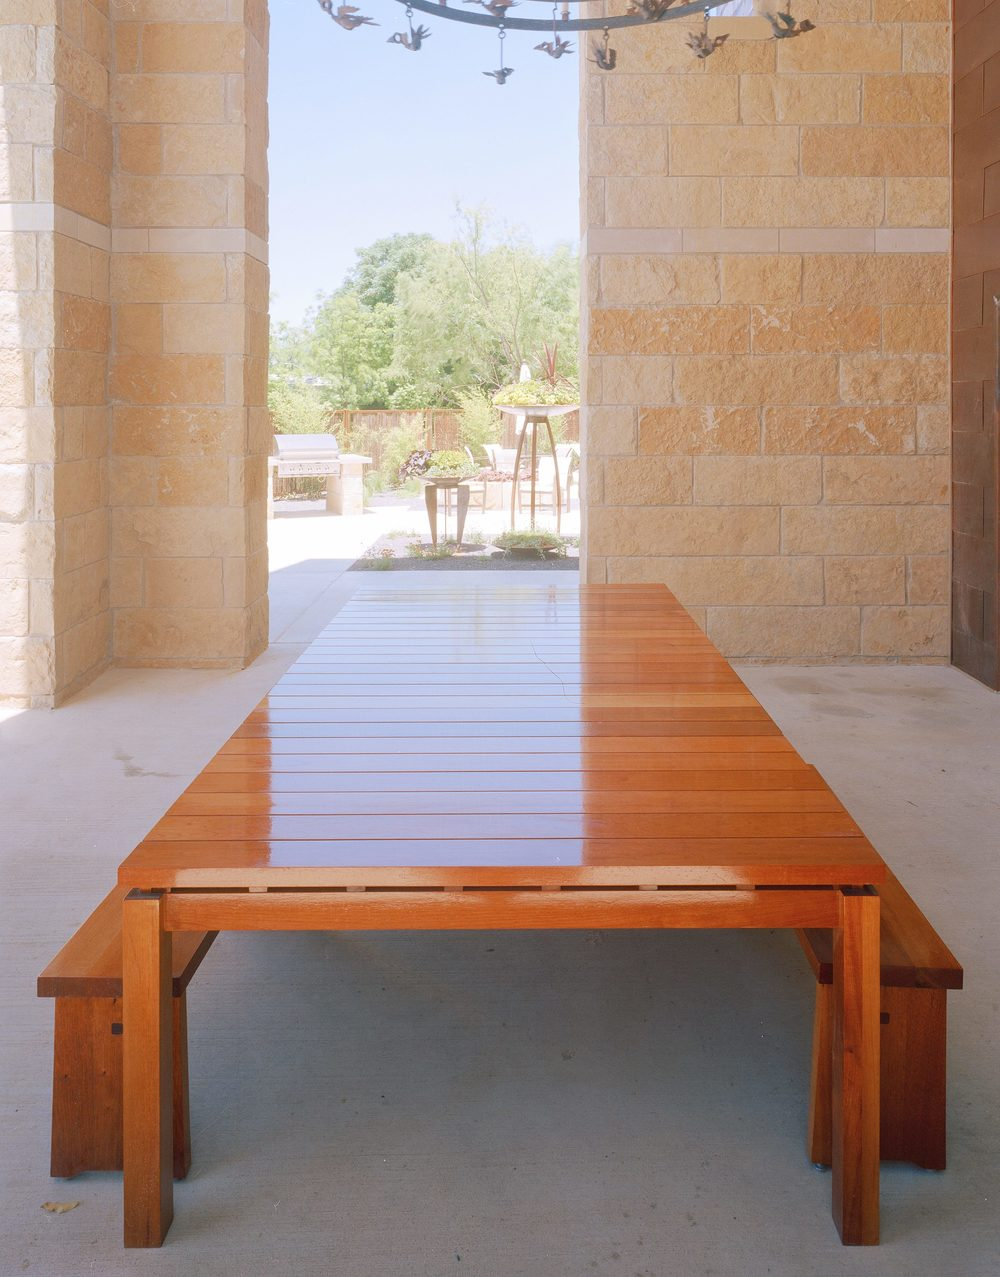 salado slat table small.jpg